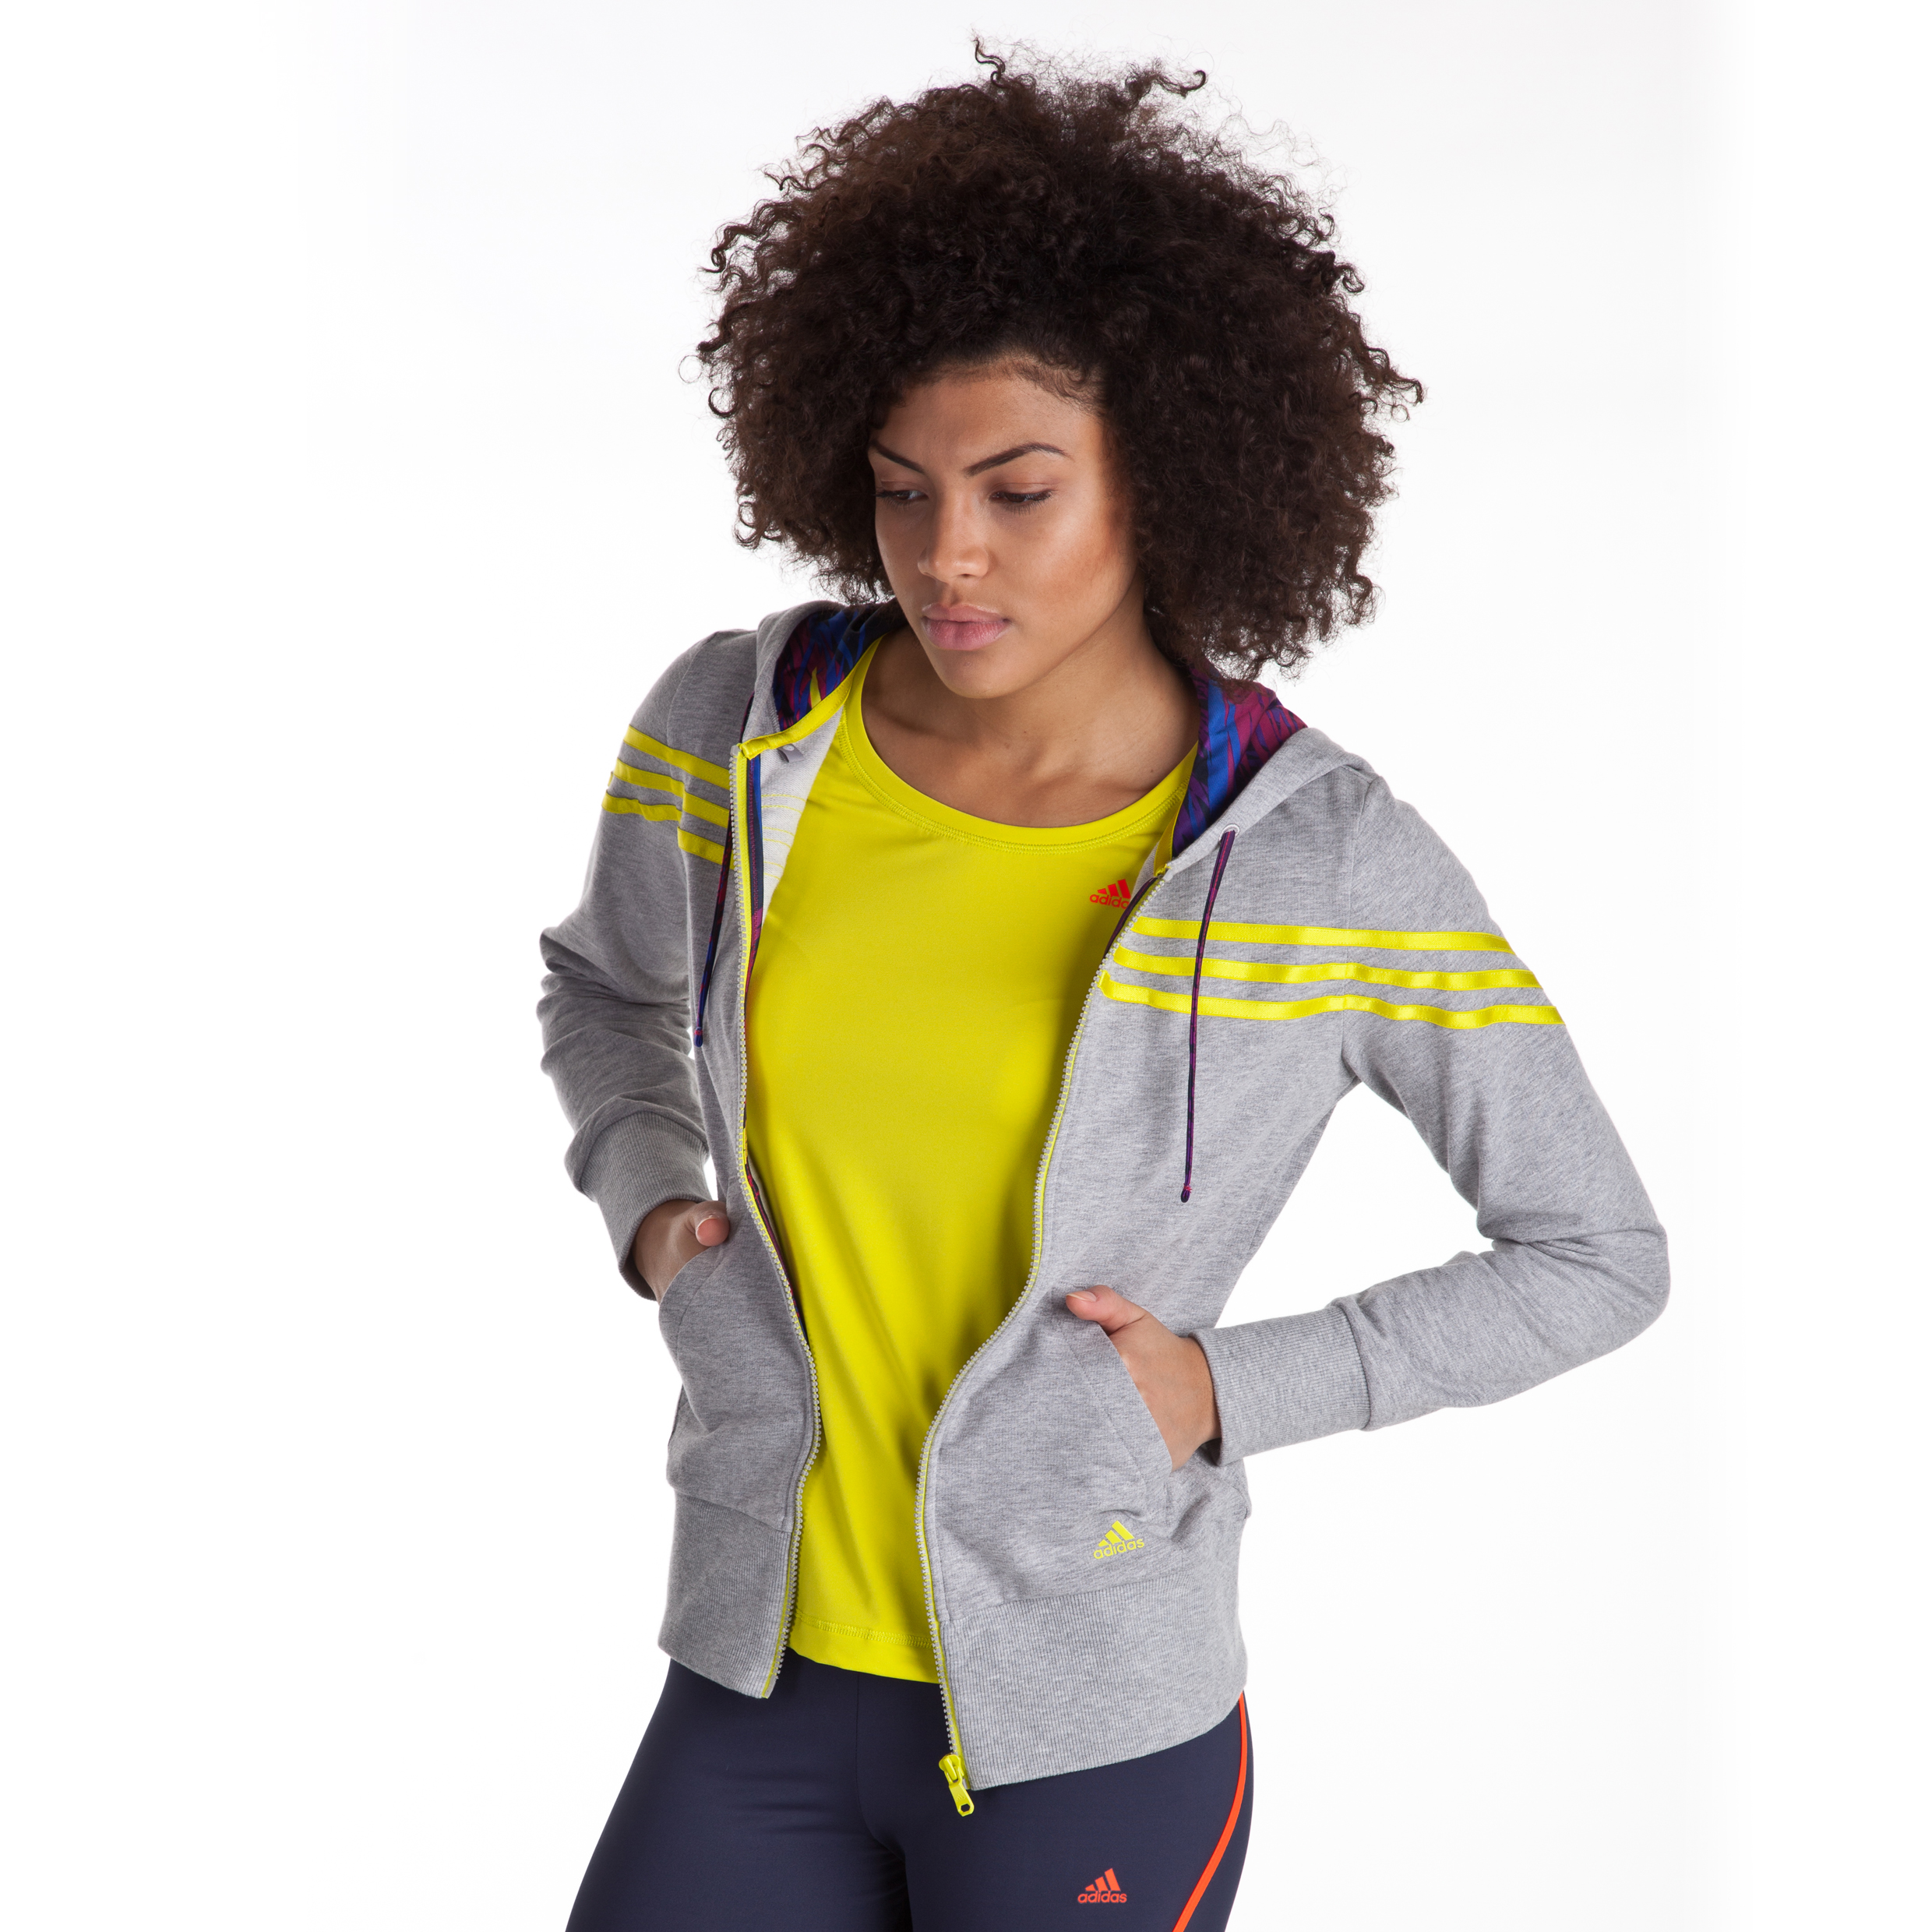 Adidas Icon 3 Stripe Hooded Track Top - Medium Grey Heather - Womens